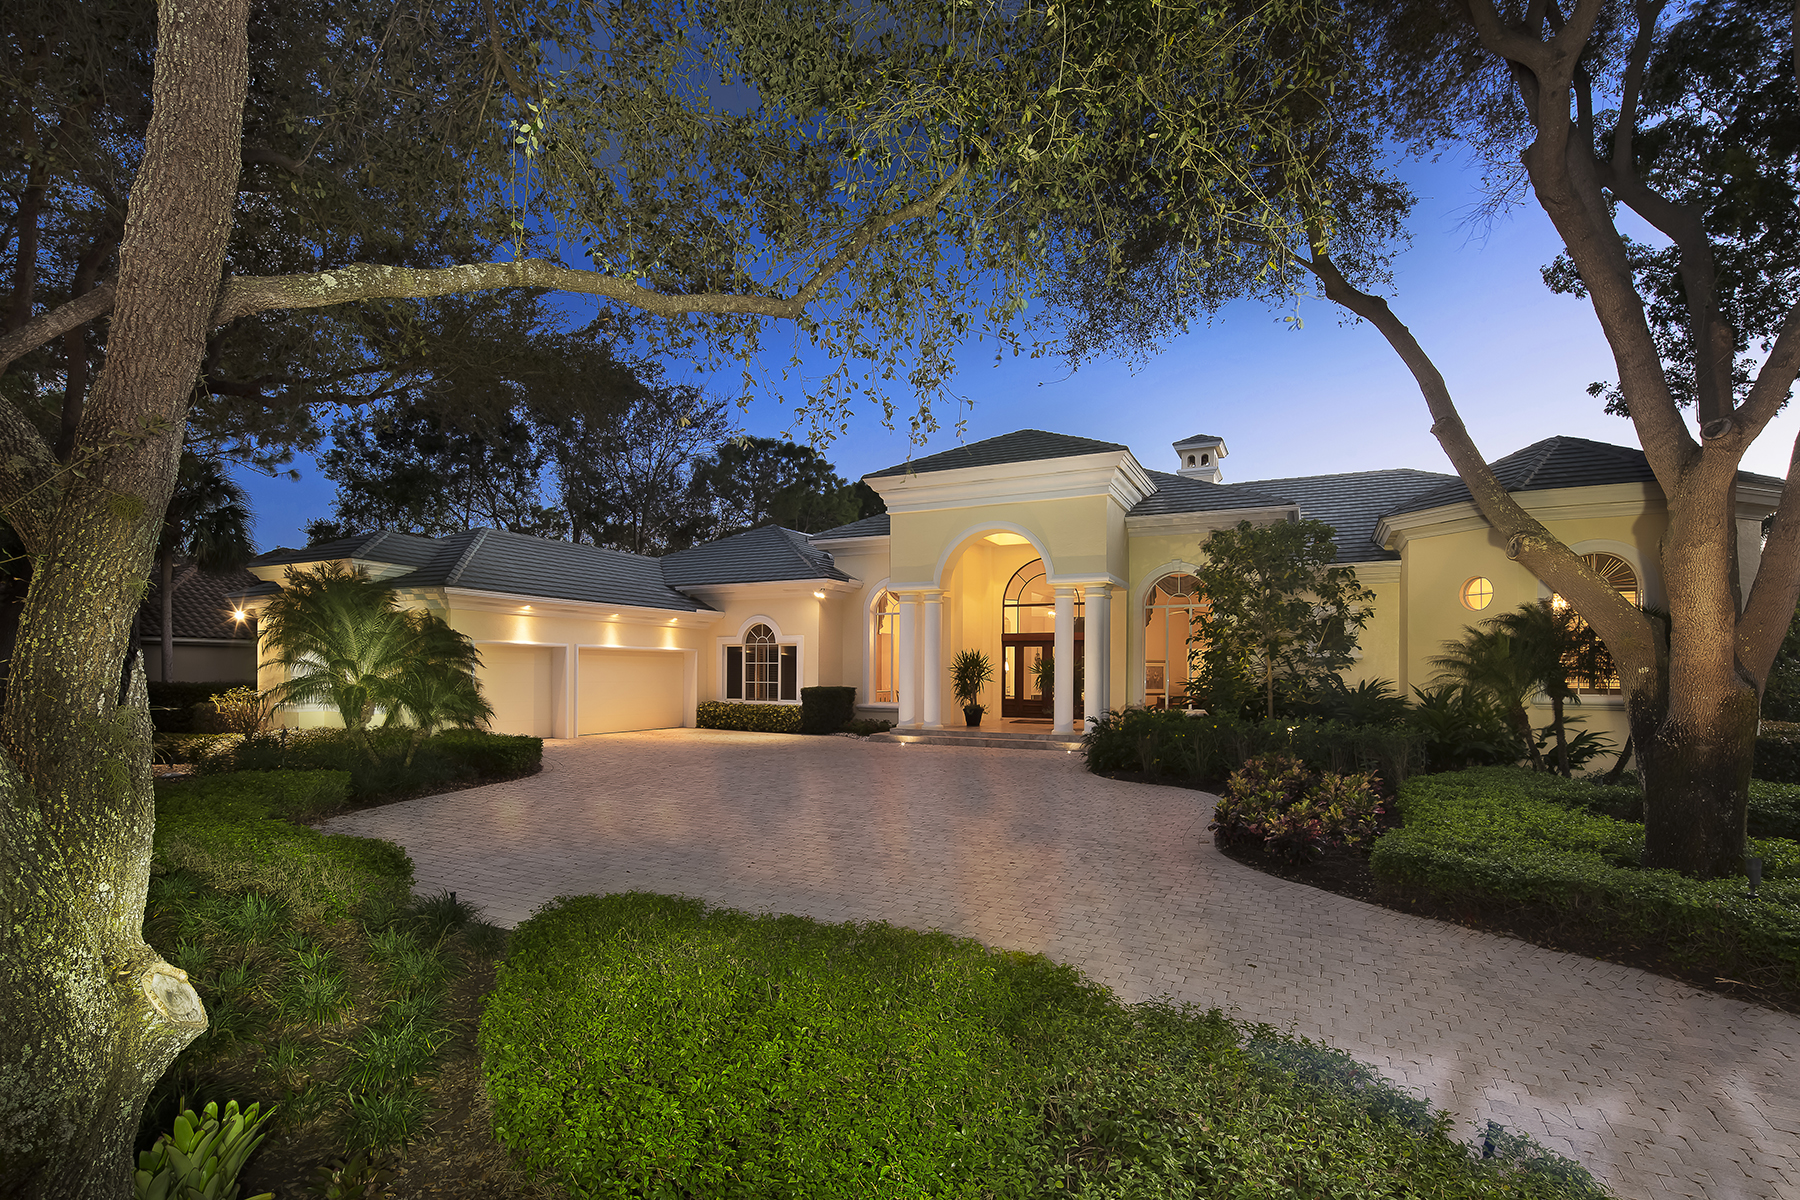 Single Family Home for Sale at Naples 2720 Buckthorn Way Naples, Florida, 34105 United States